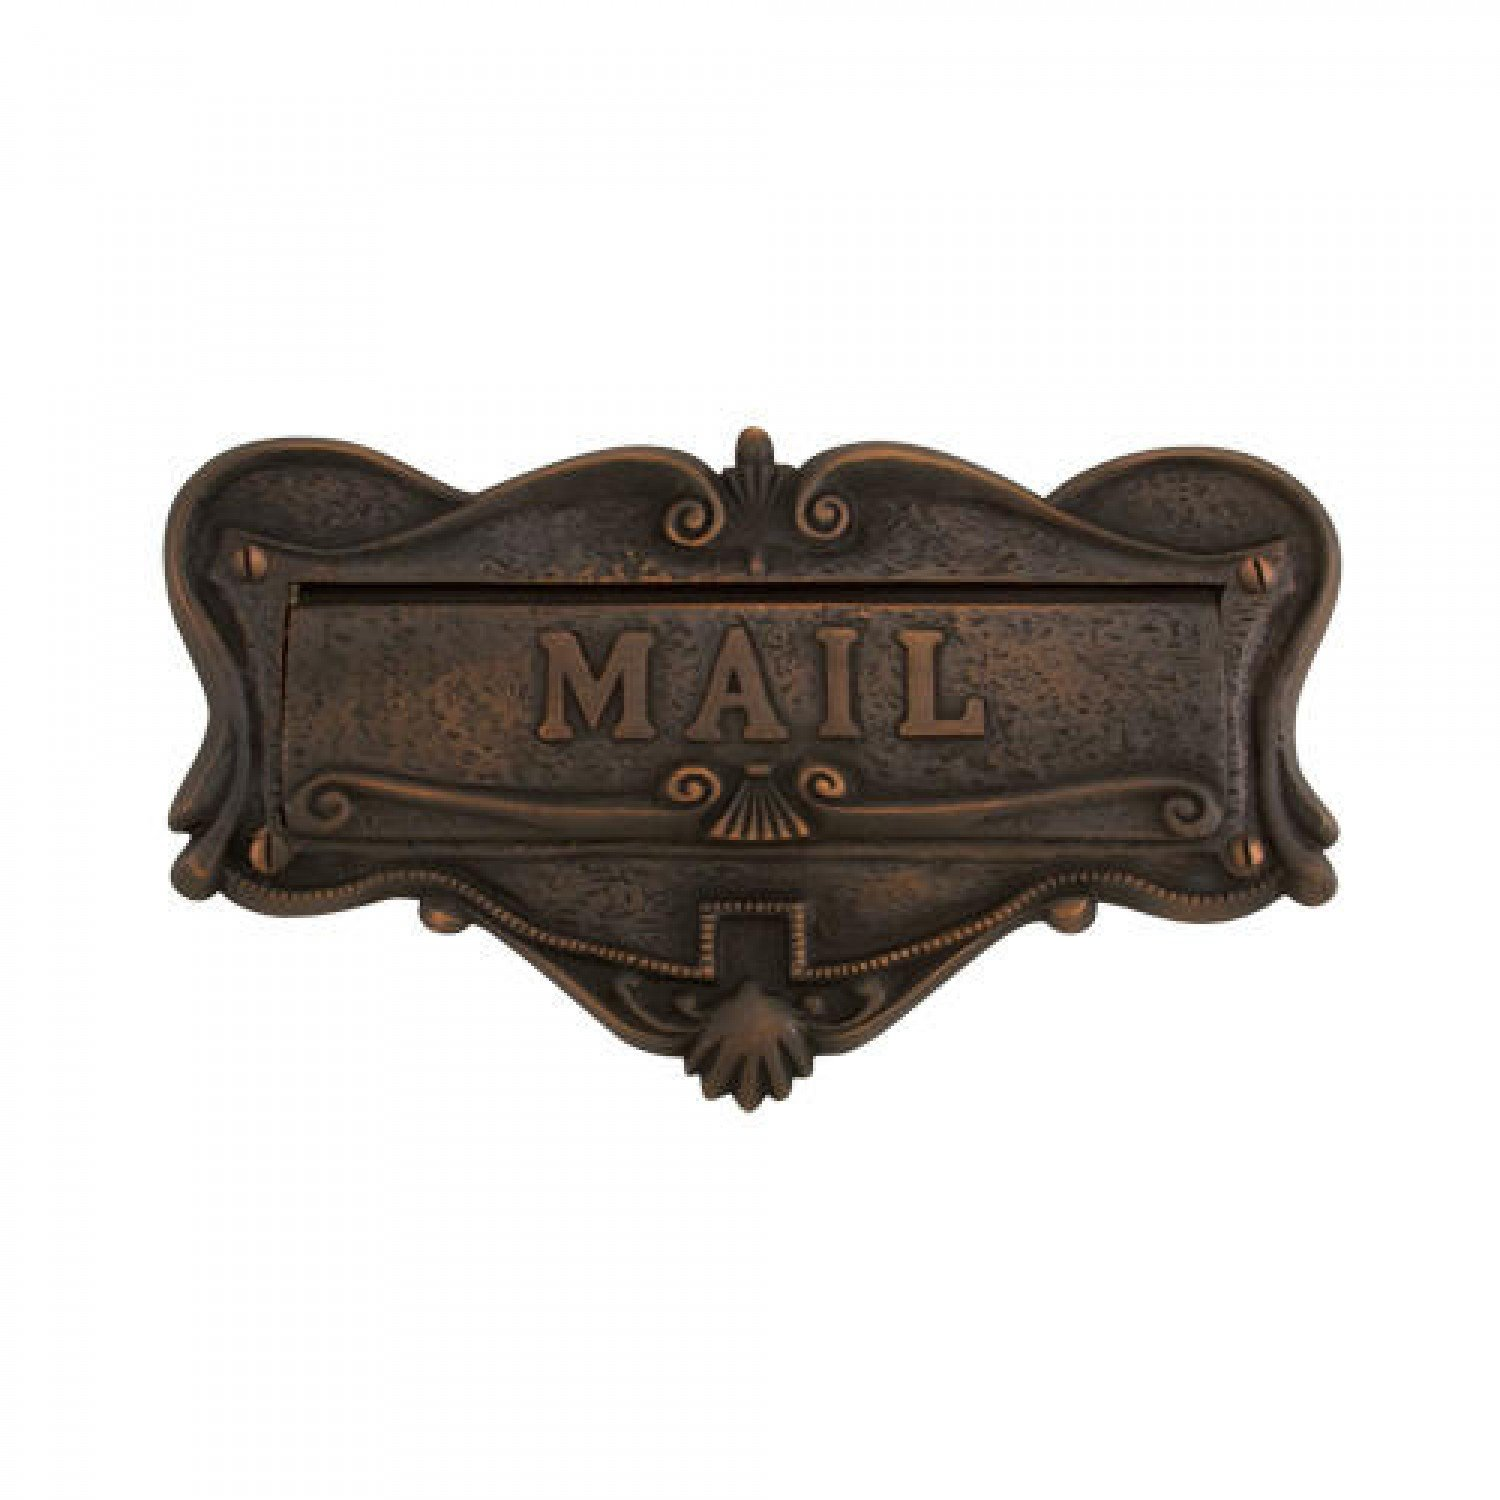 Naiture Solid Brass Mail Slot in Oil Rubbed Bronze Finish by SH